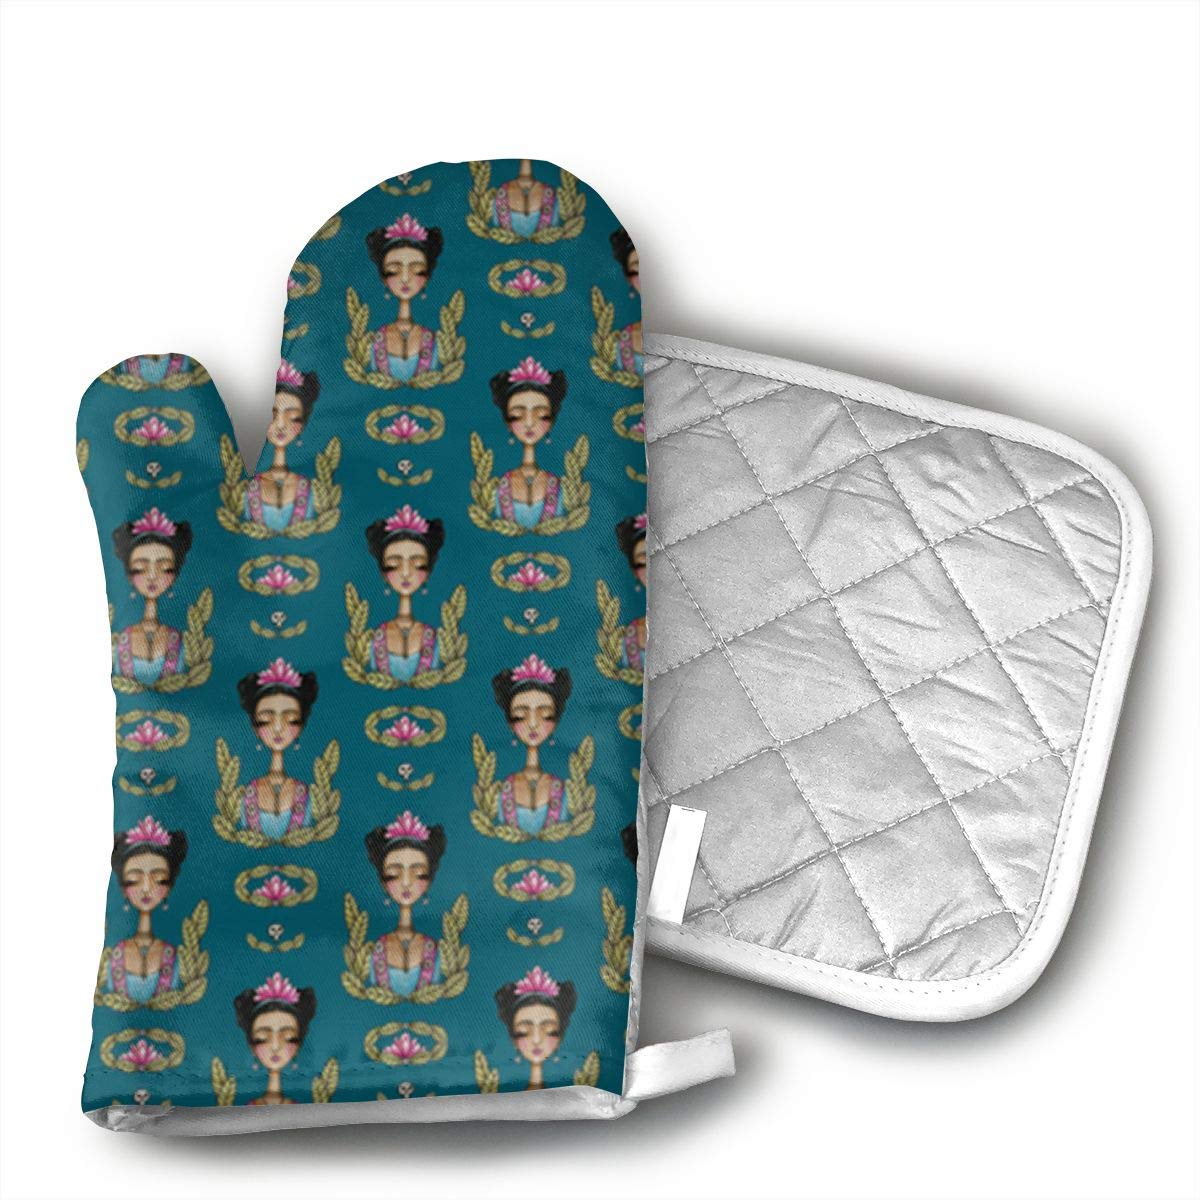 GRSTsys Frida Kahlo Pattern Oven Mitt Kitchen, Machine Washable and Heat Resistant for Cooking and Baking